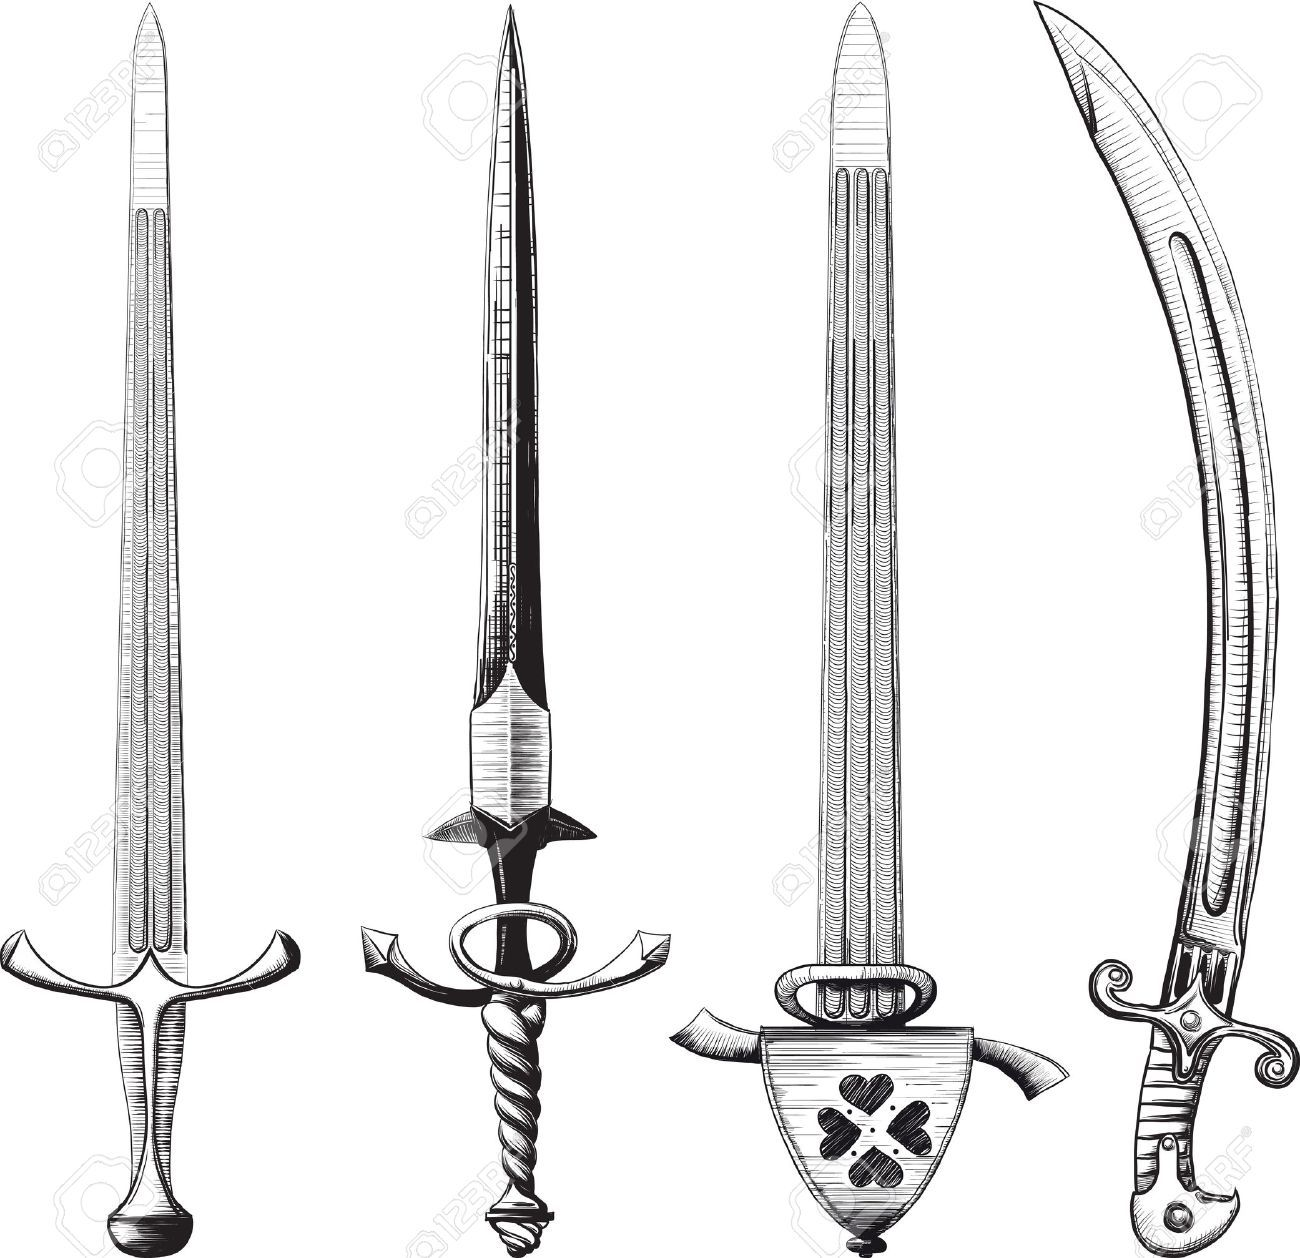 Pin By Mr L On O Drawings Sword Drawing Sword